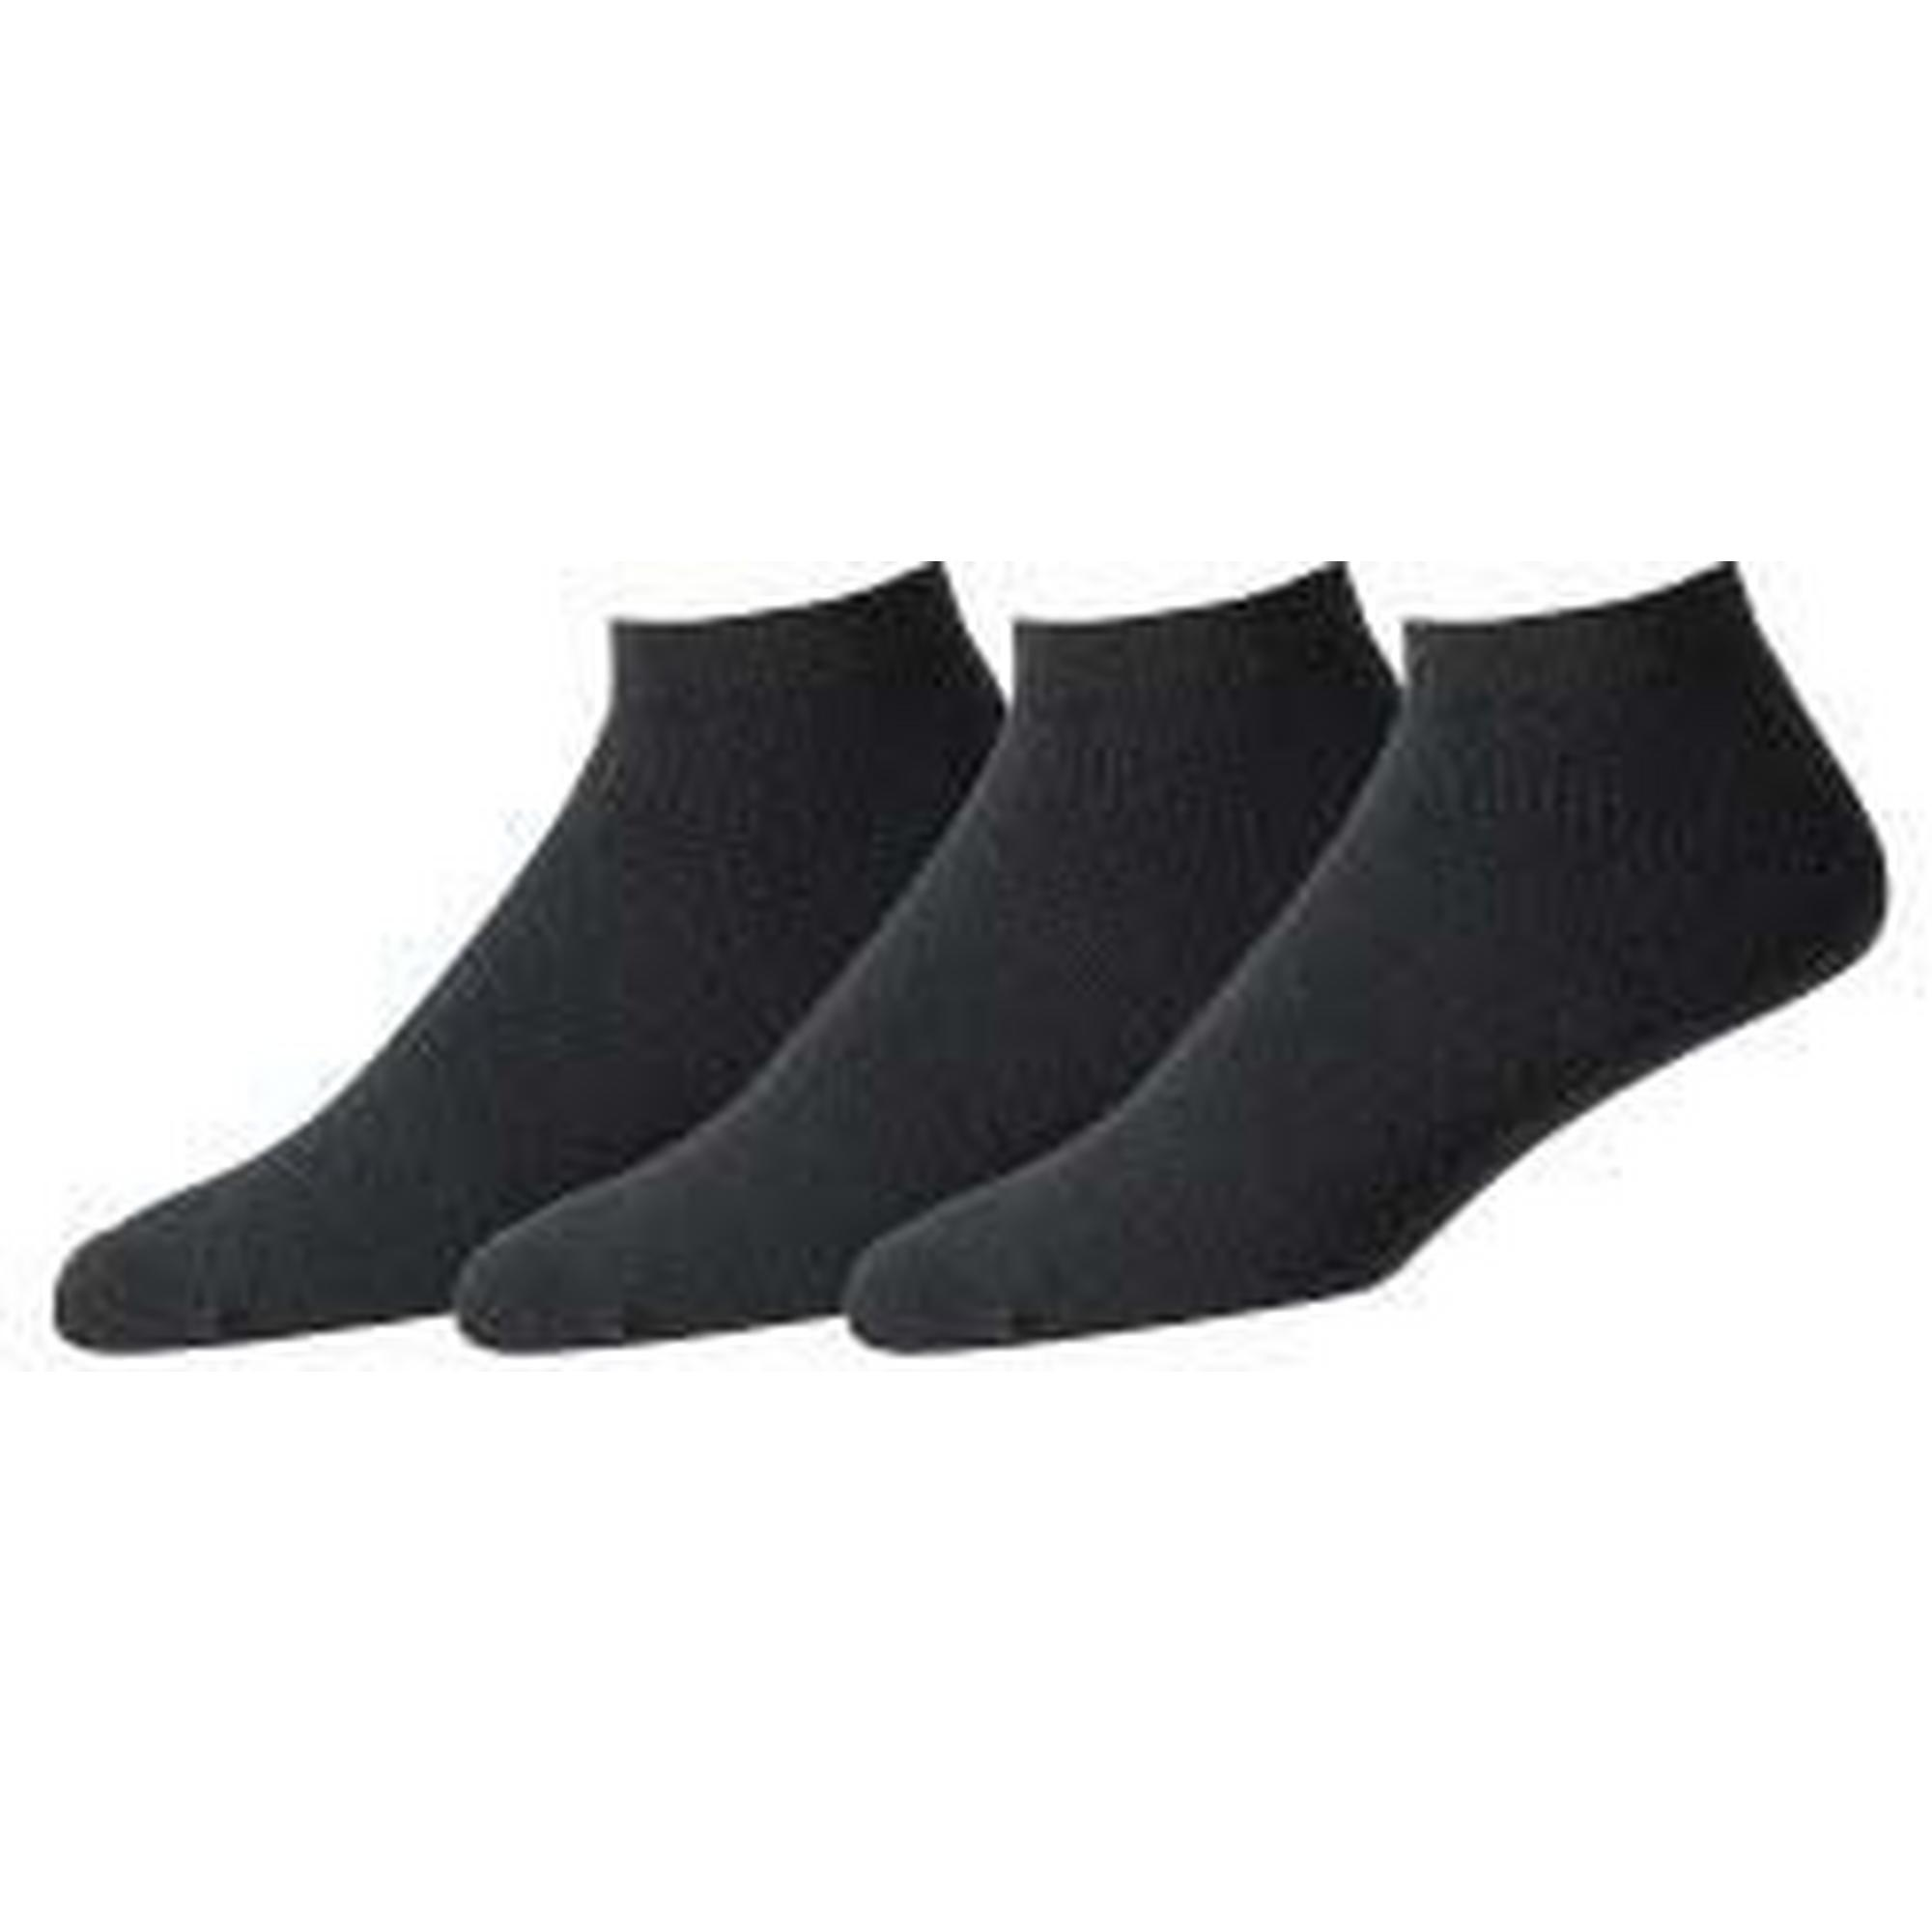 Men's Cotton Socks 3-Pack